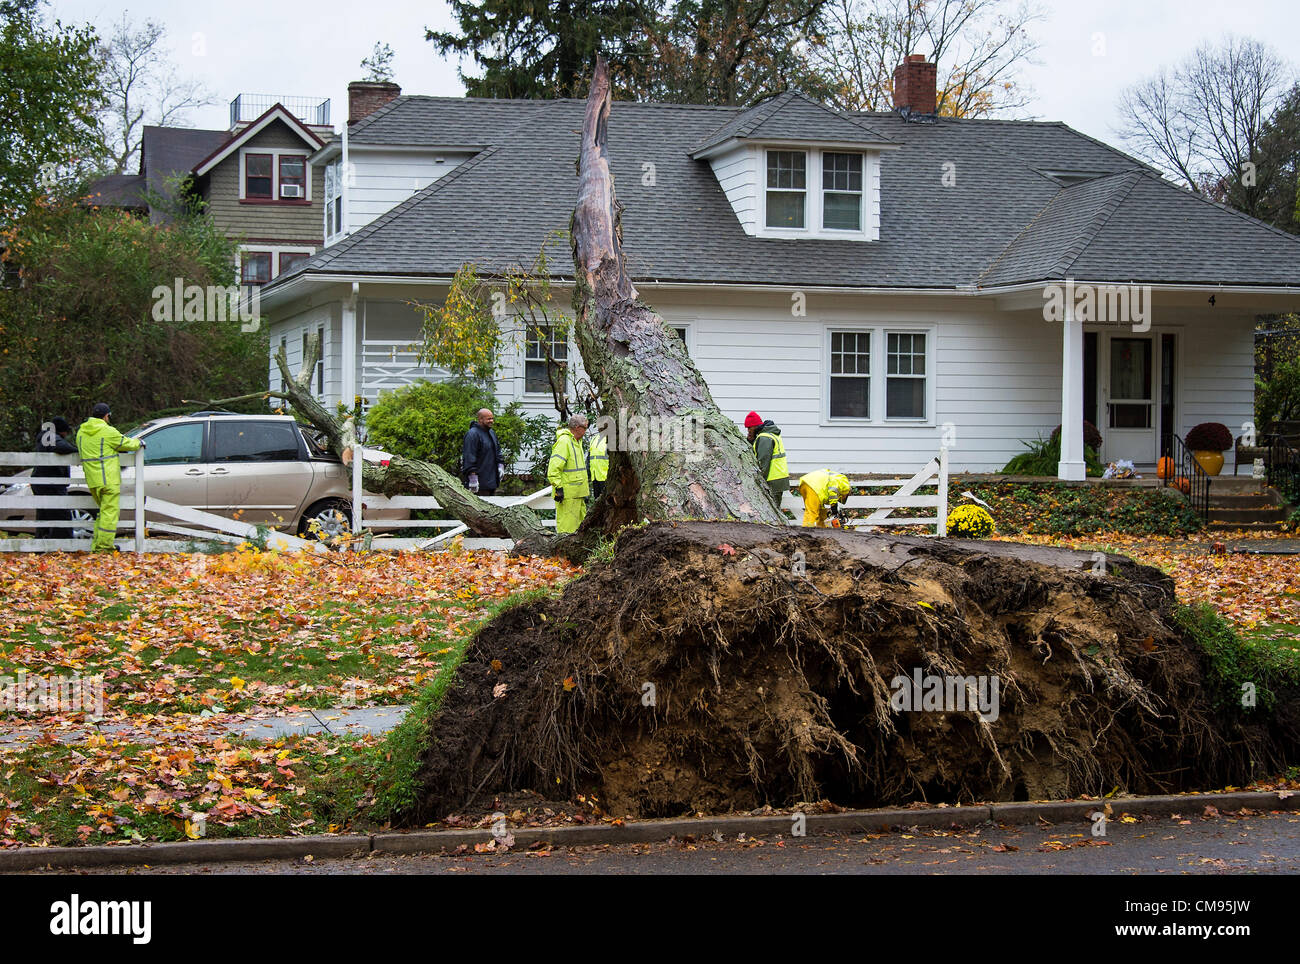 New Jersey, USA. 30th October 2012. Local crew assesses tree and property damage in the wake of Hurricane Sandy, - Stock Image